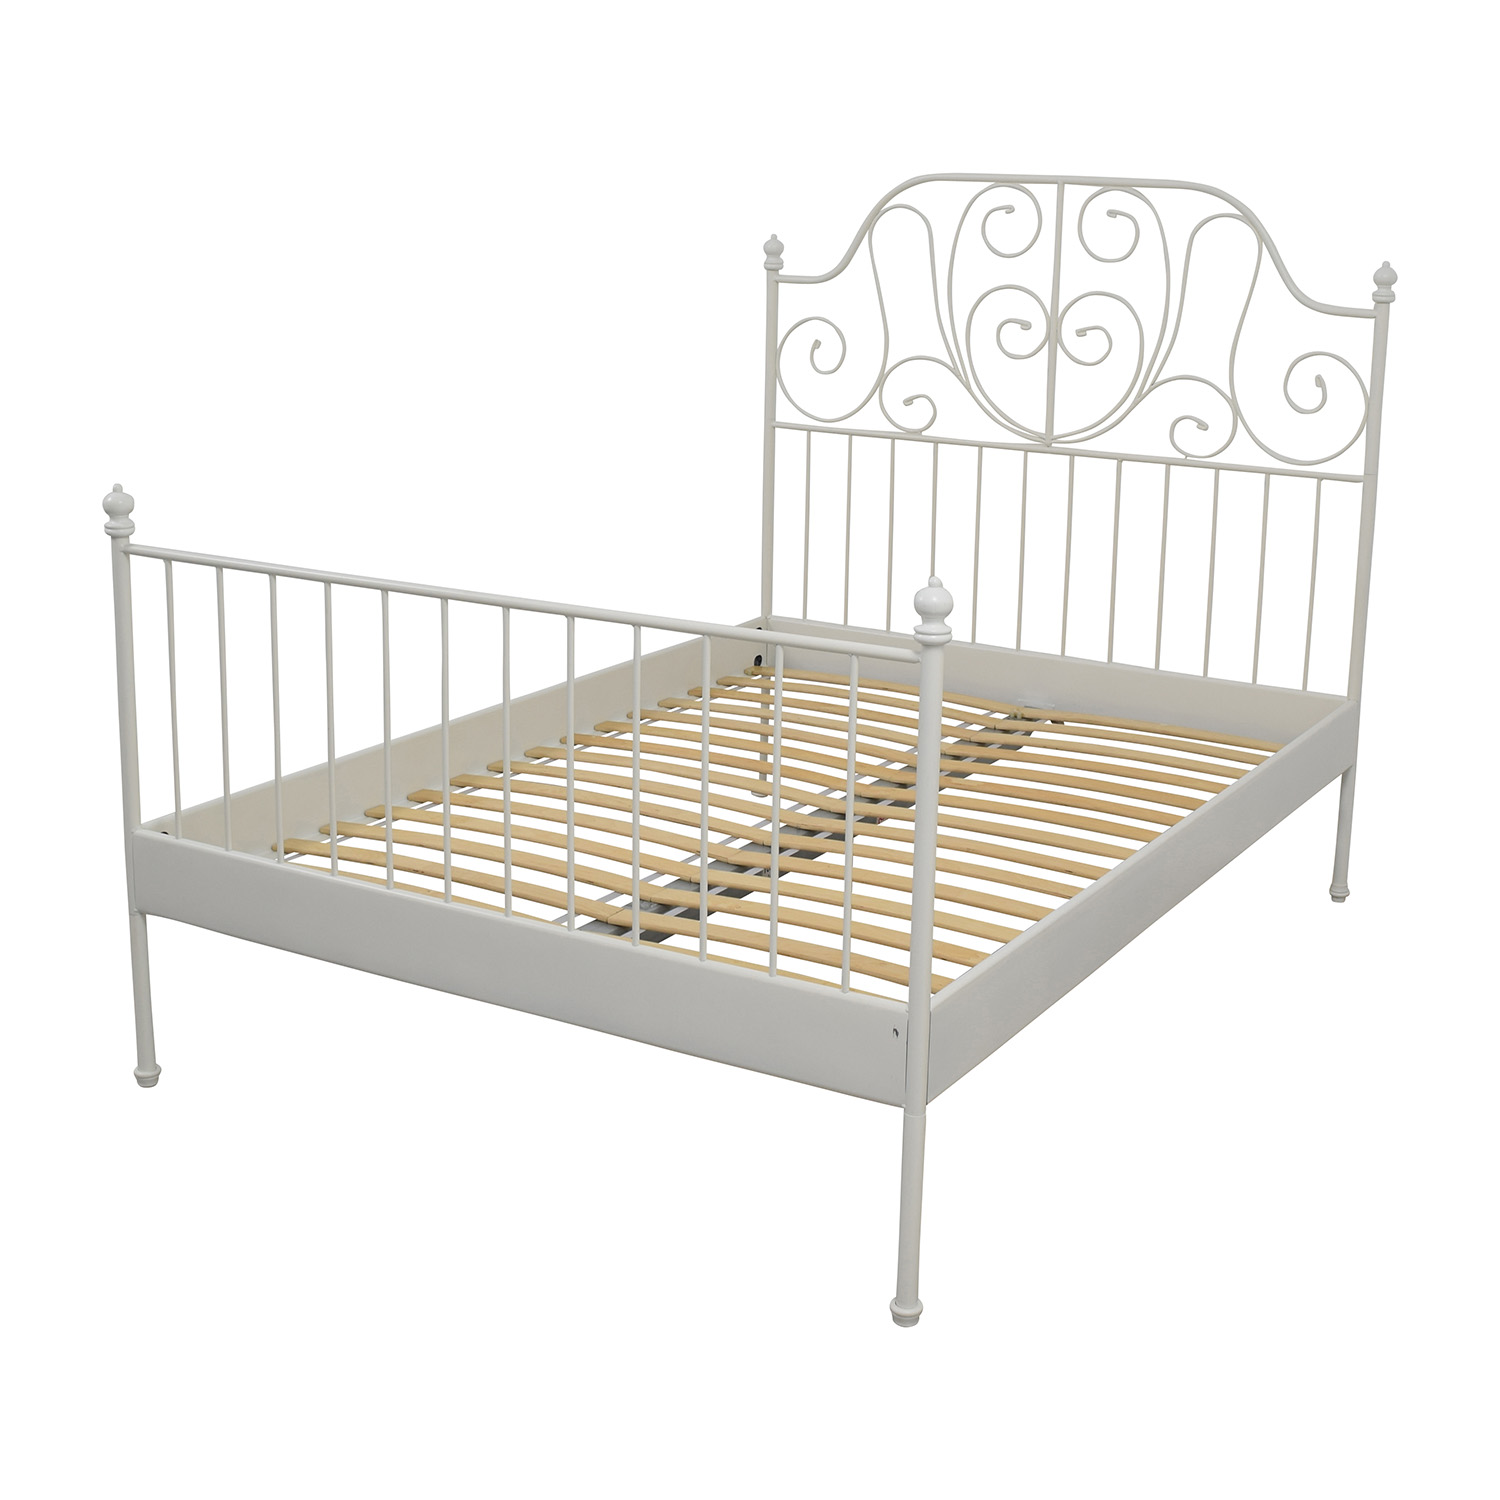 Ikea futon bed frame for Queen size bed ikea